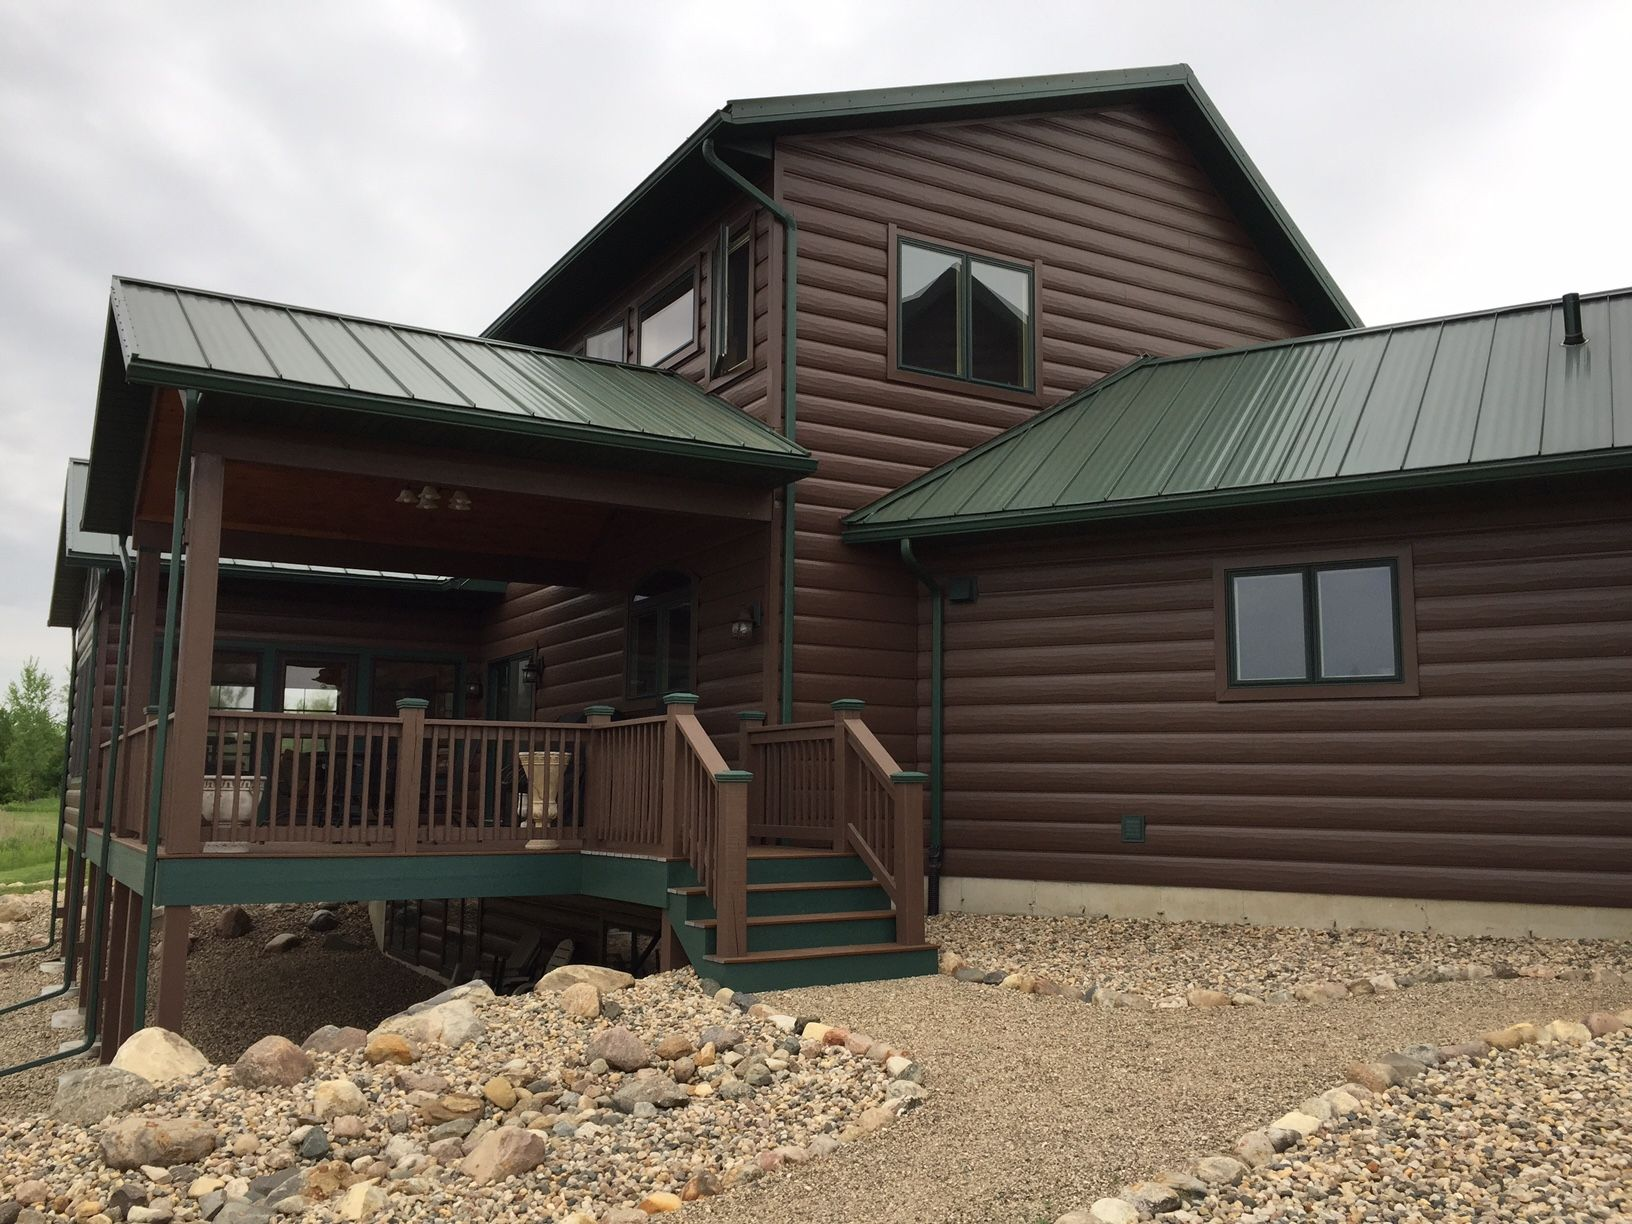 Autumn Brown Trulog Steel Siding With Green Roof Maintenance Free Log Cabin